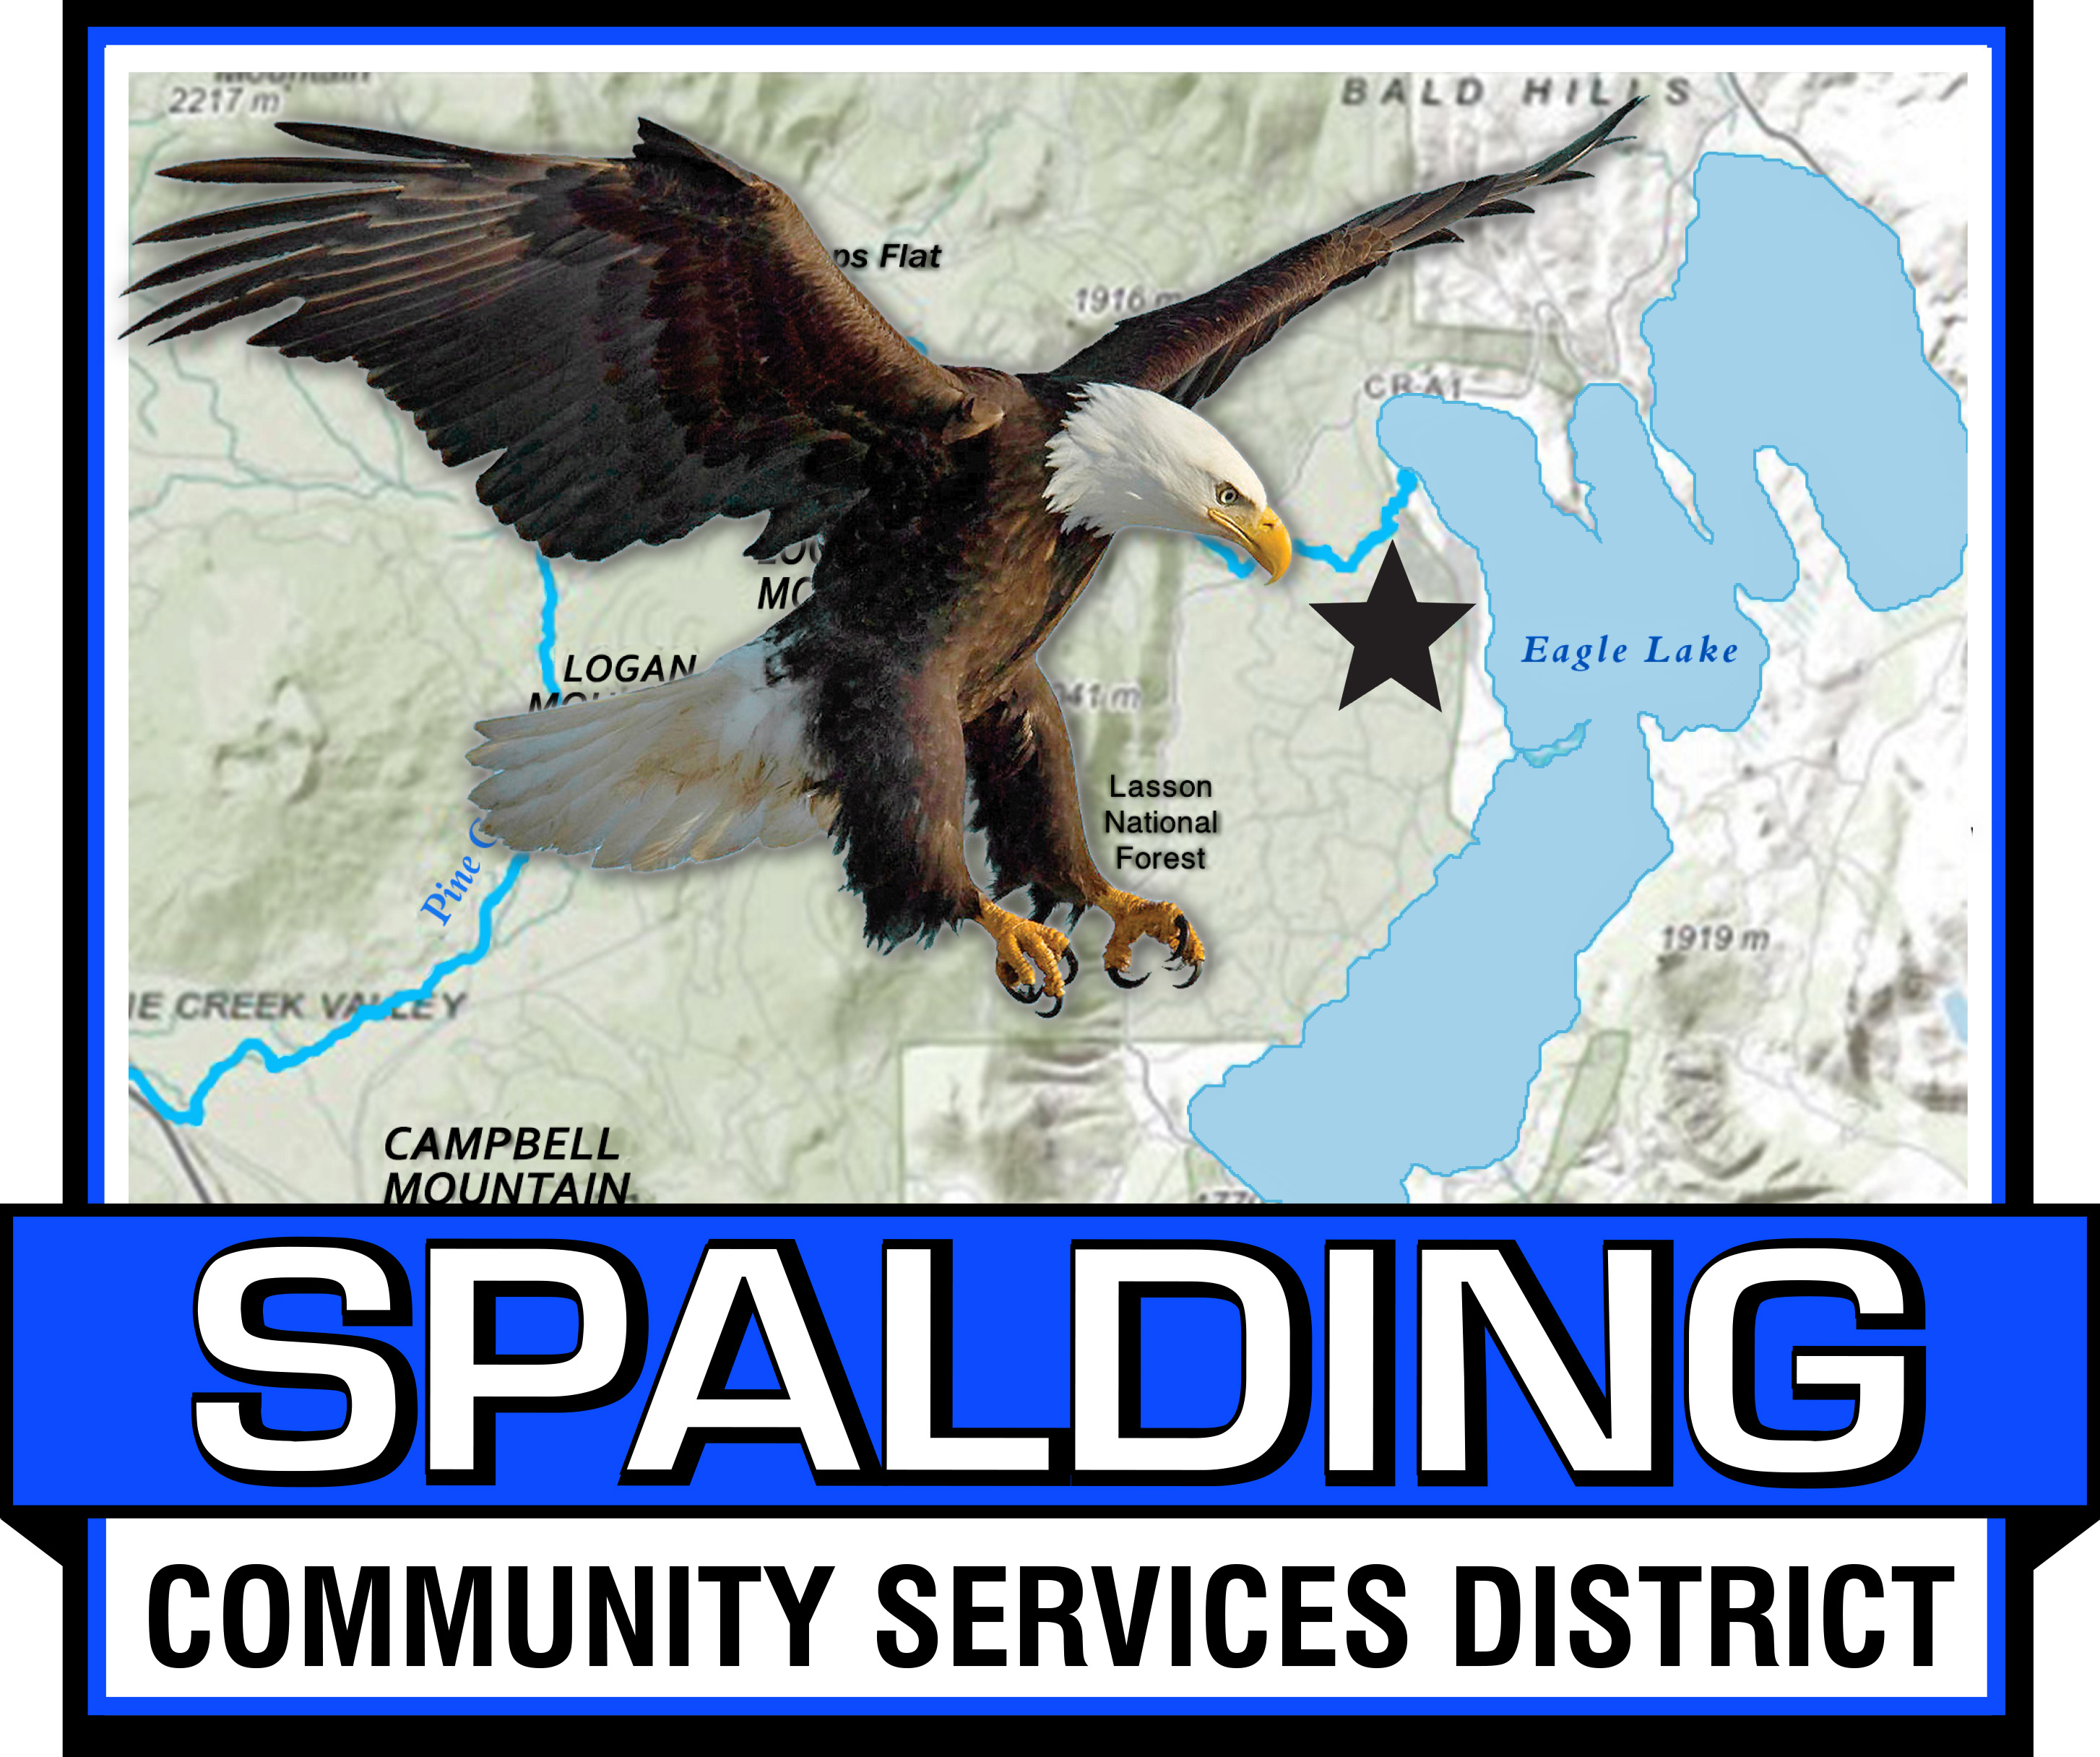 Spalding Community Services District